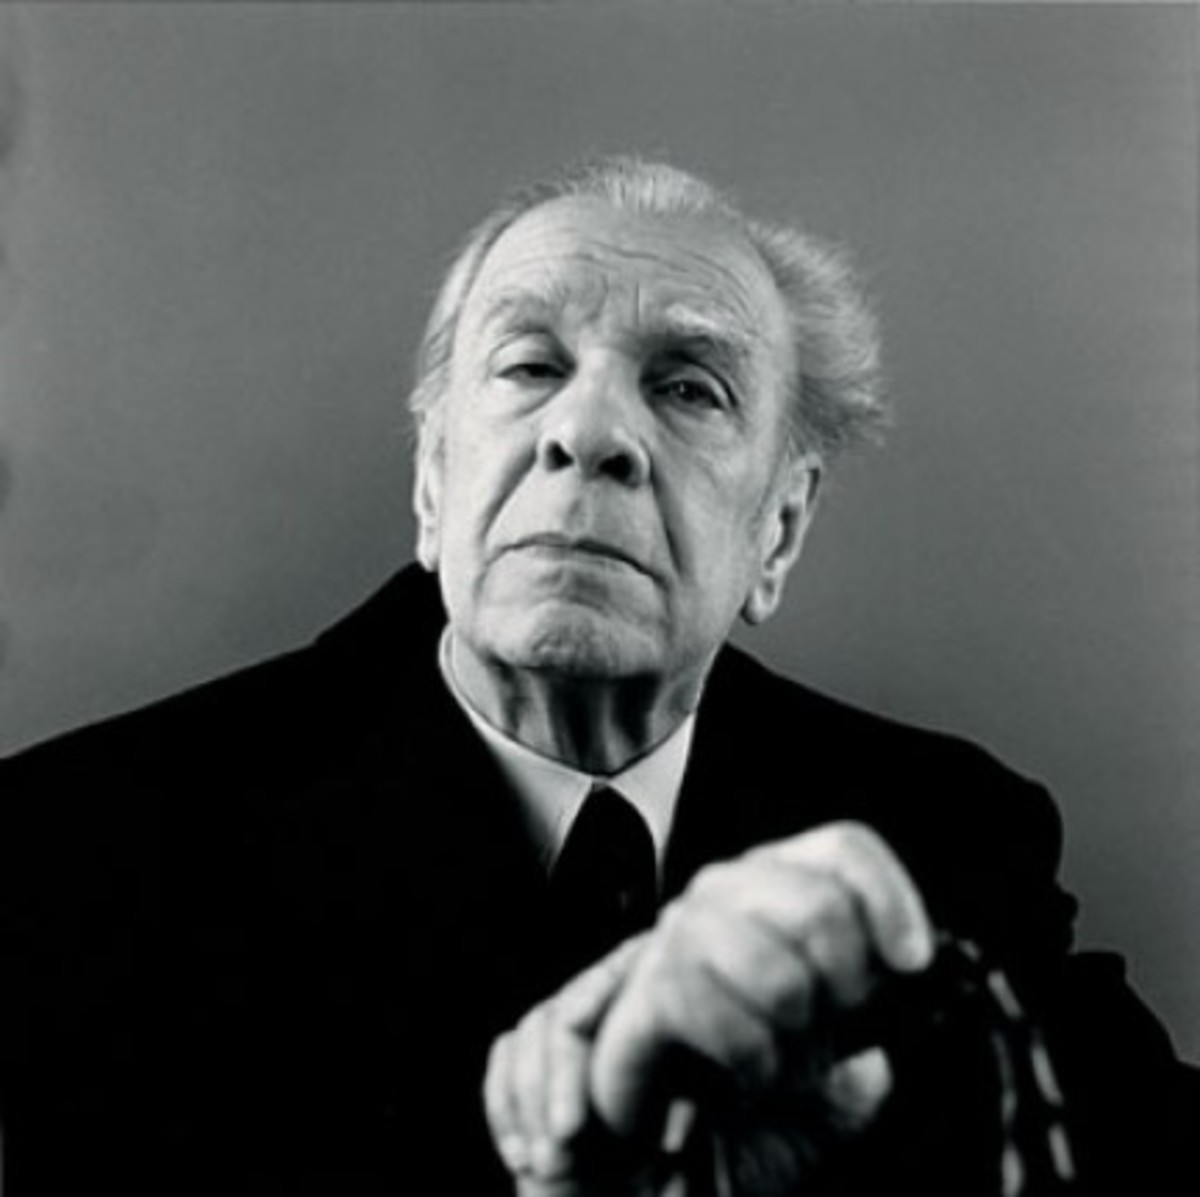 the-holy-trinity-of-narrative-techniques-in-borges-fiction-and-the-deconstruction-of-literature